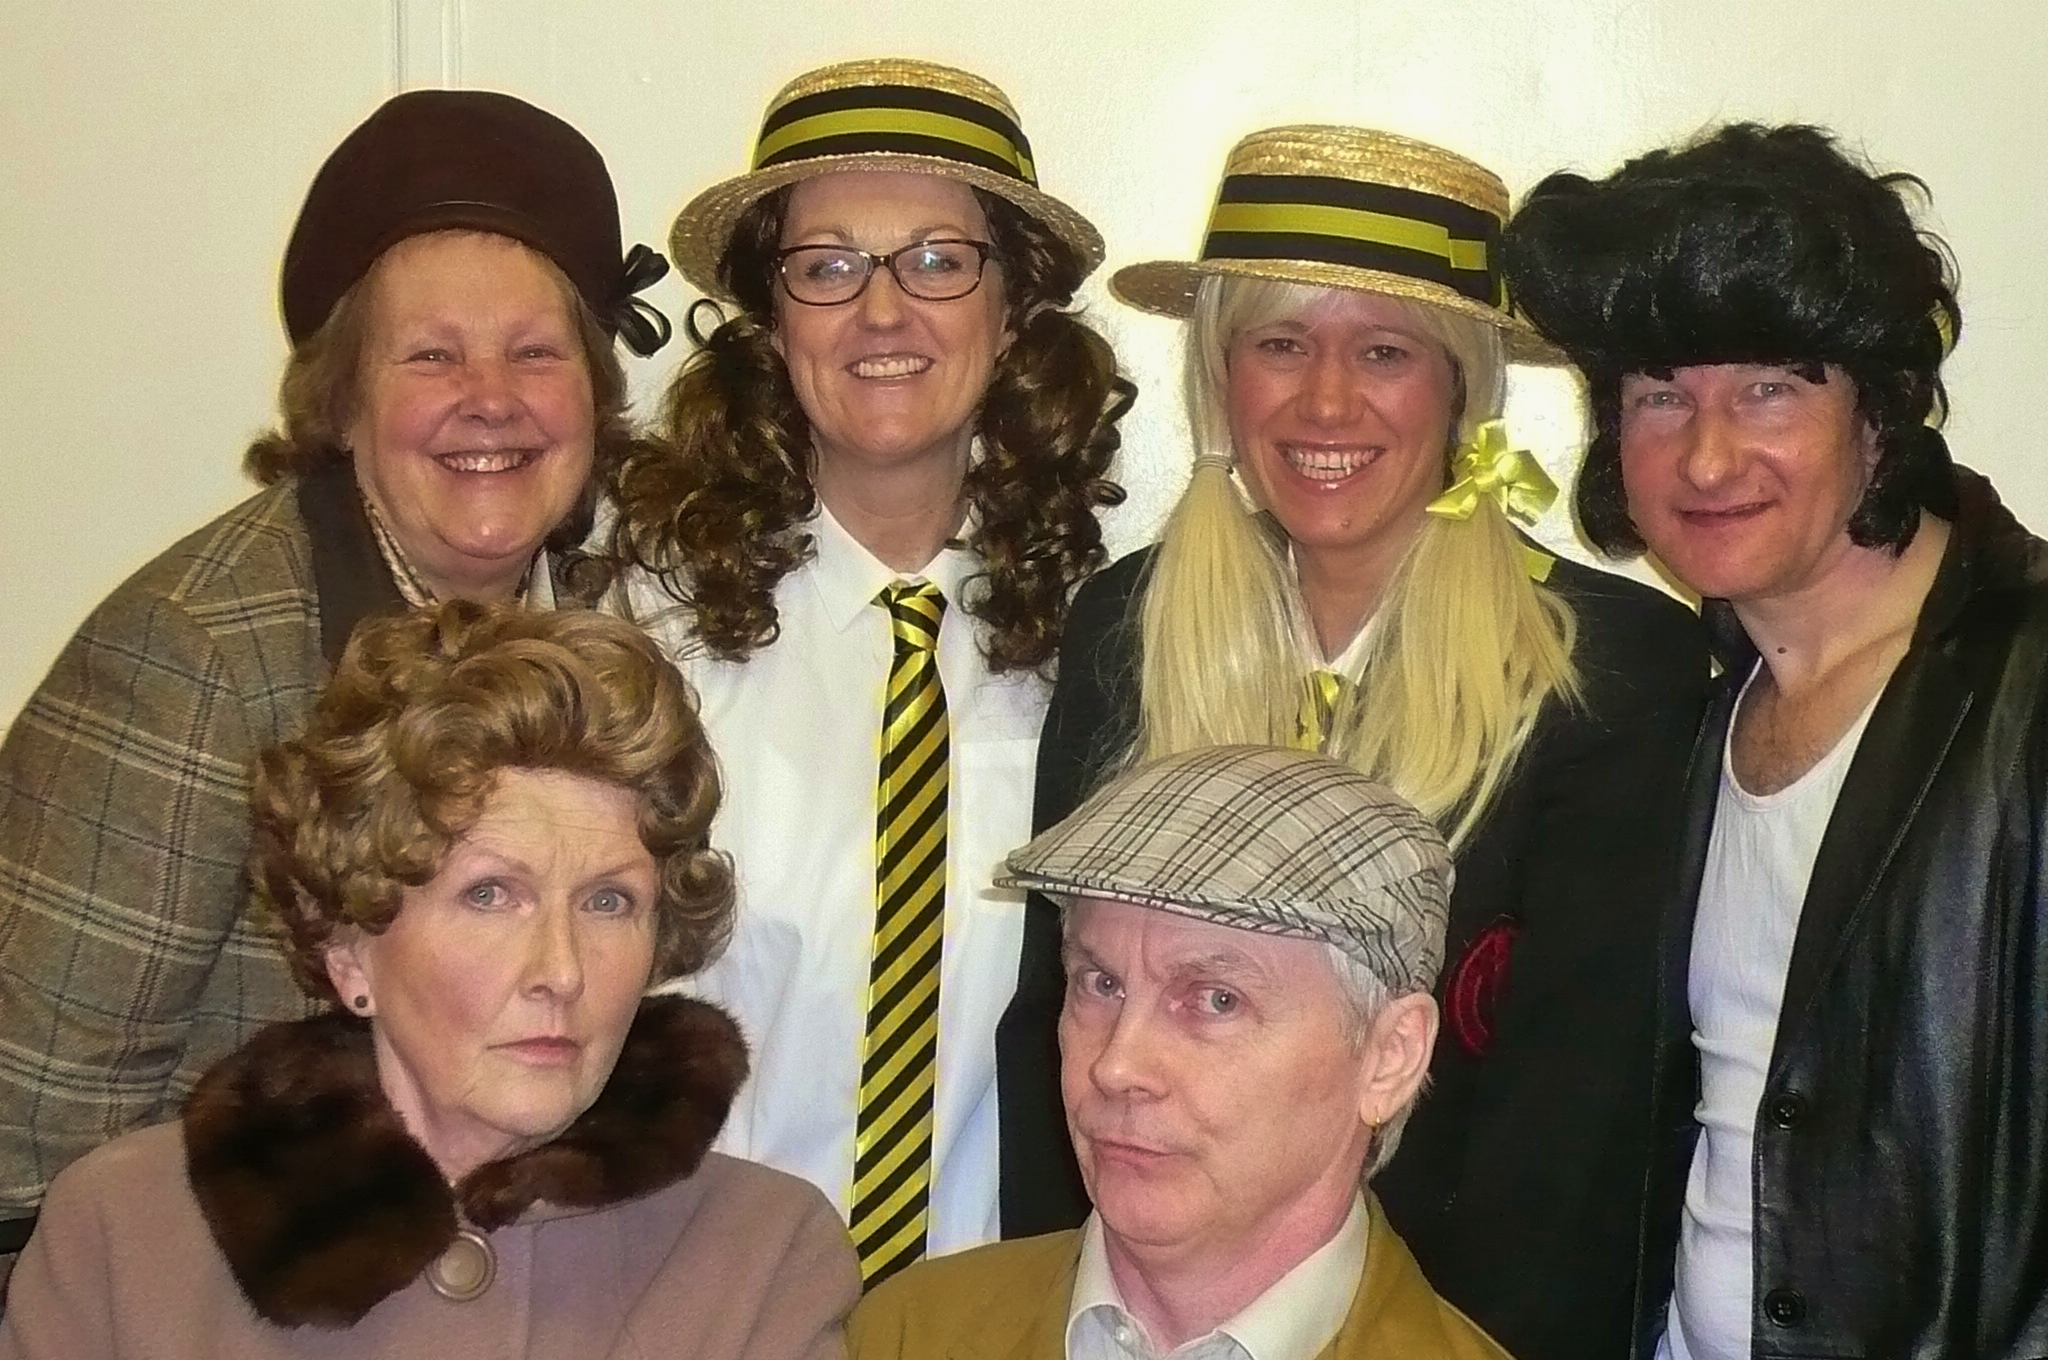 Some of the Austwick Players, from top left clockwise, Elizabeth Booth, Julie Greenwood, Samantha Purcell, Jez Cox, Tony Stephens and Barbara Harrison prepare for Golden Years